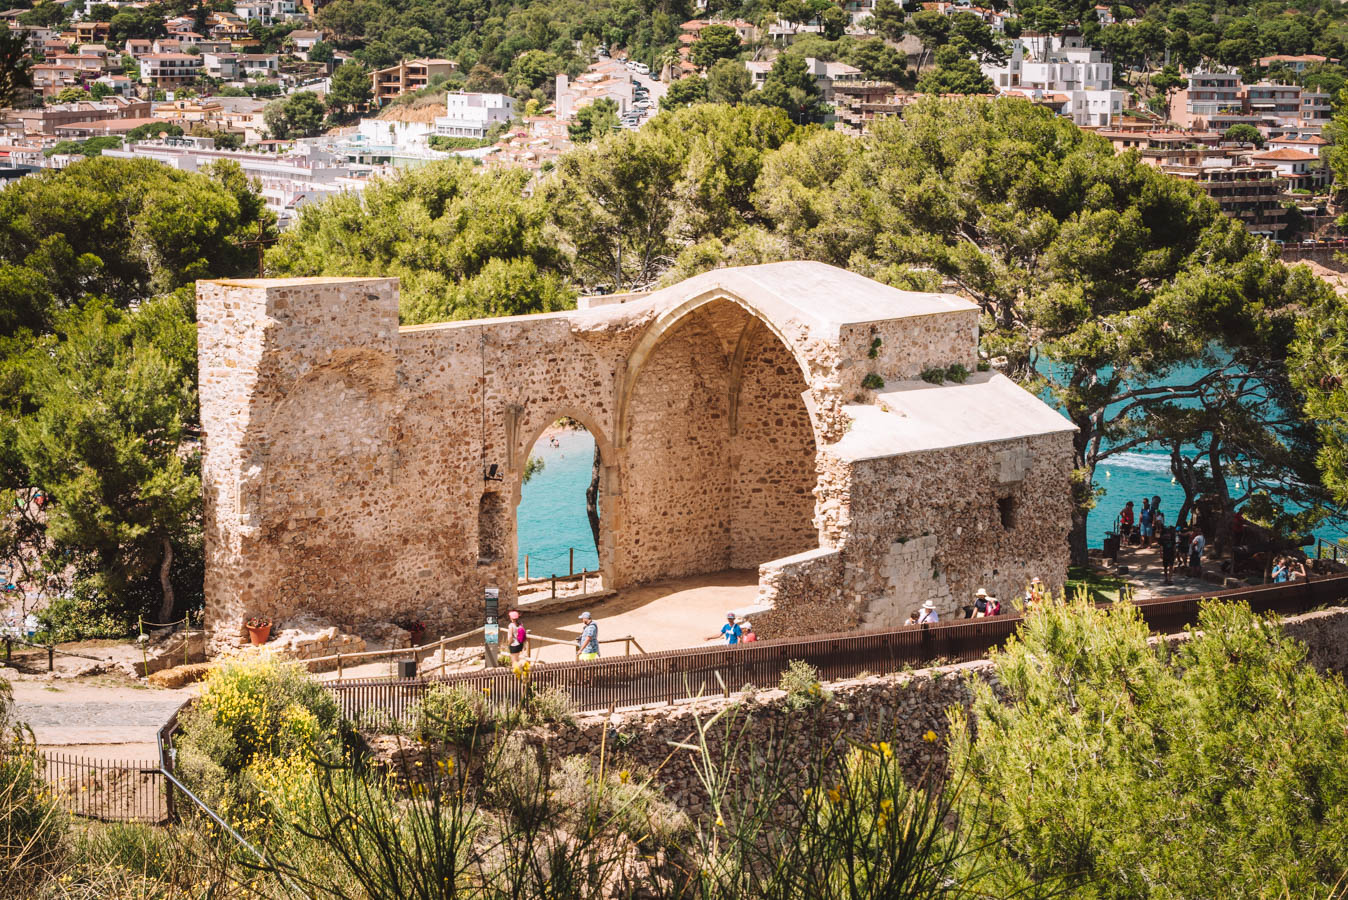 The castle and walls of Tossa de Mar are amazing to visit.